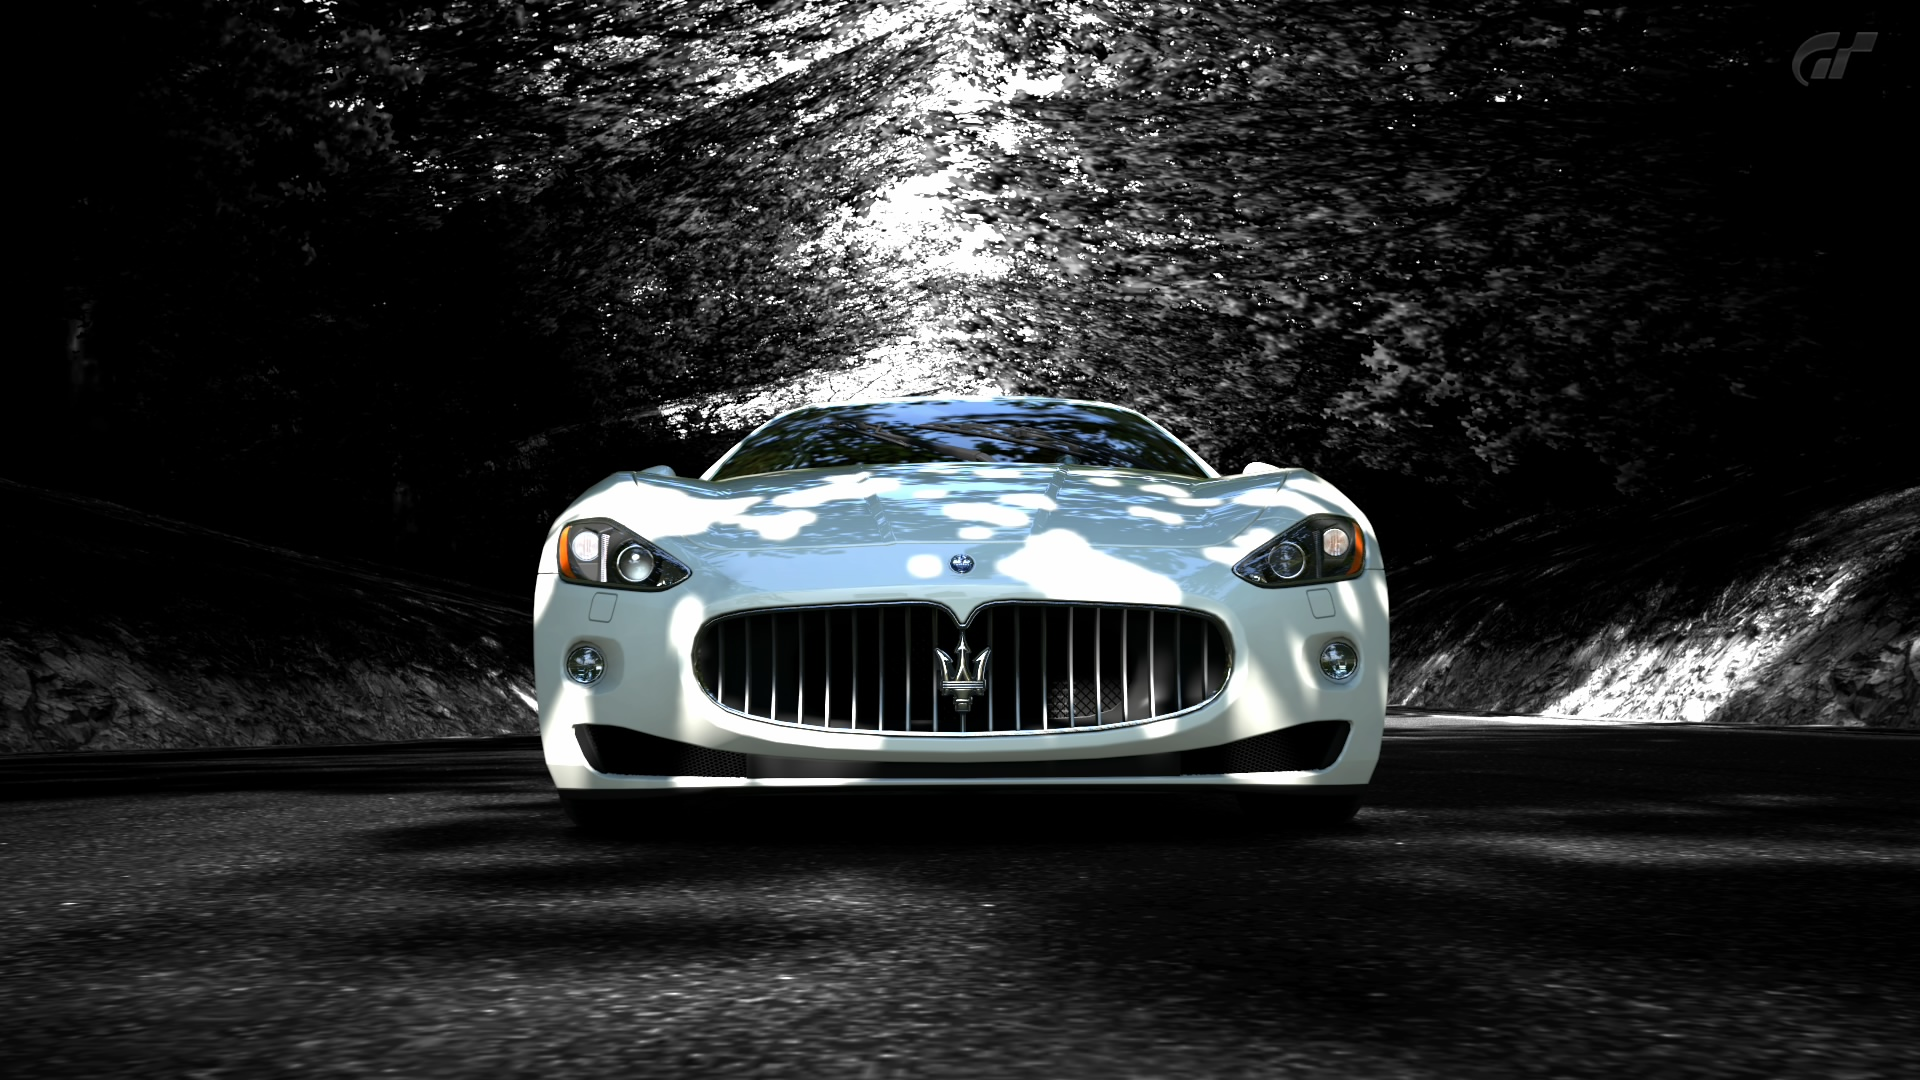 White Maserati Wallpaper Picture Downl0ad